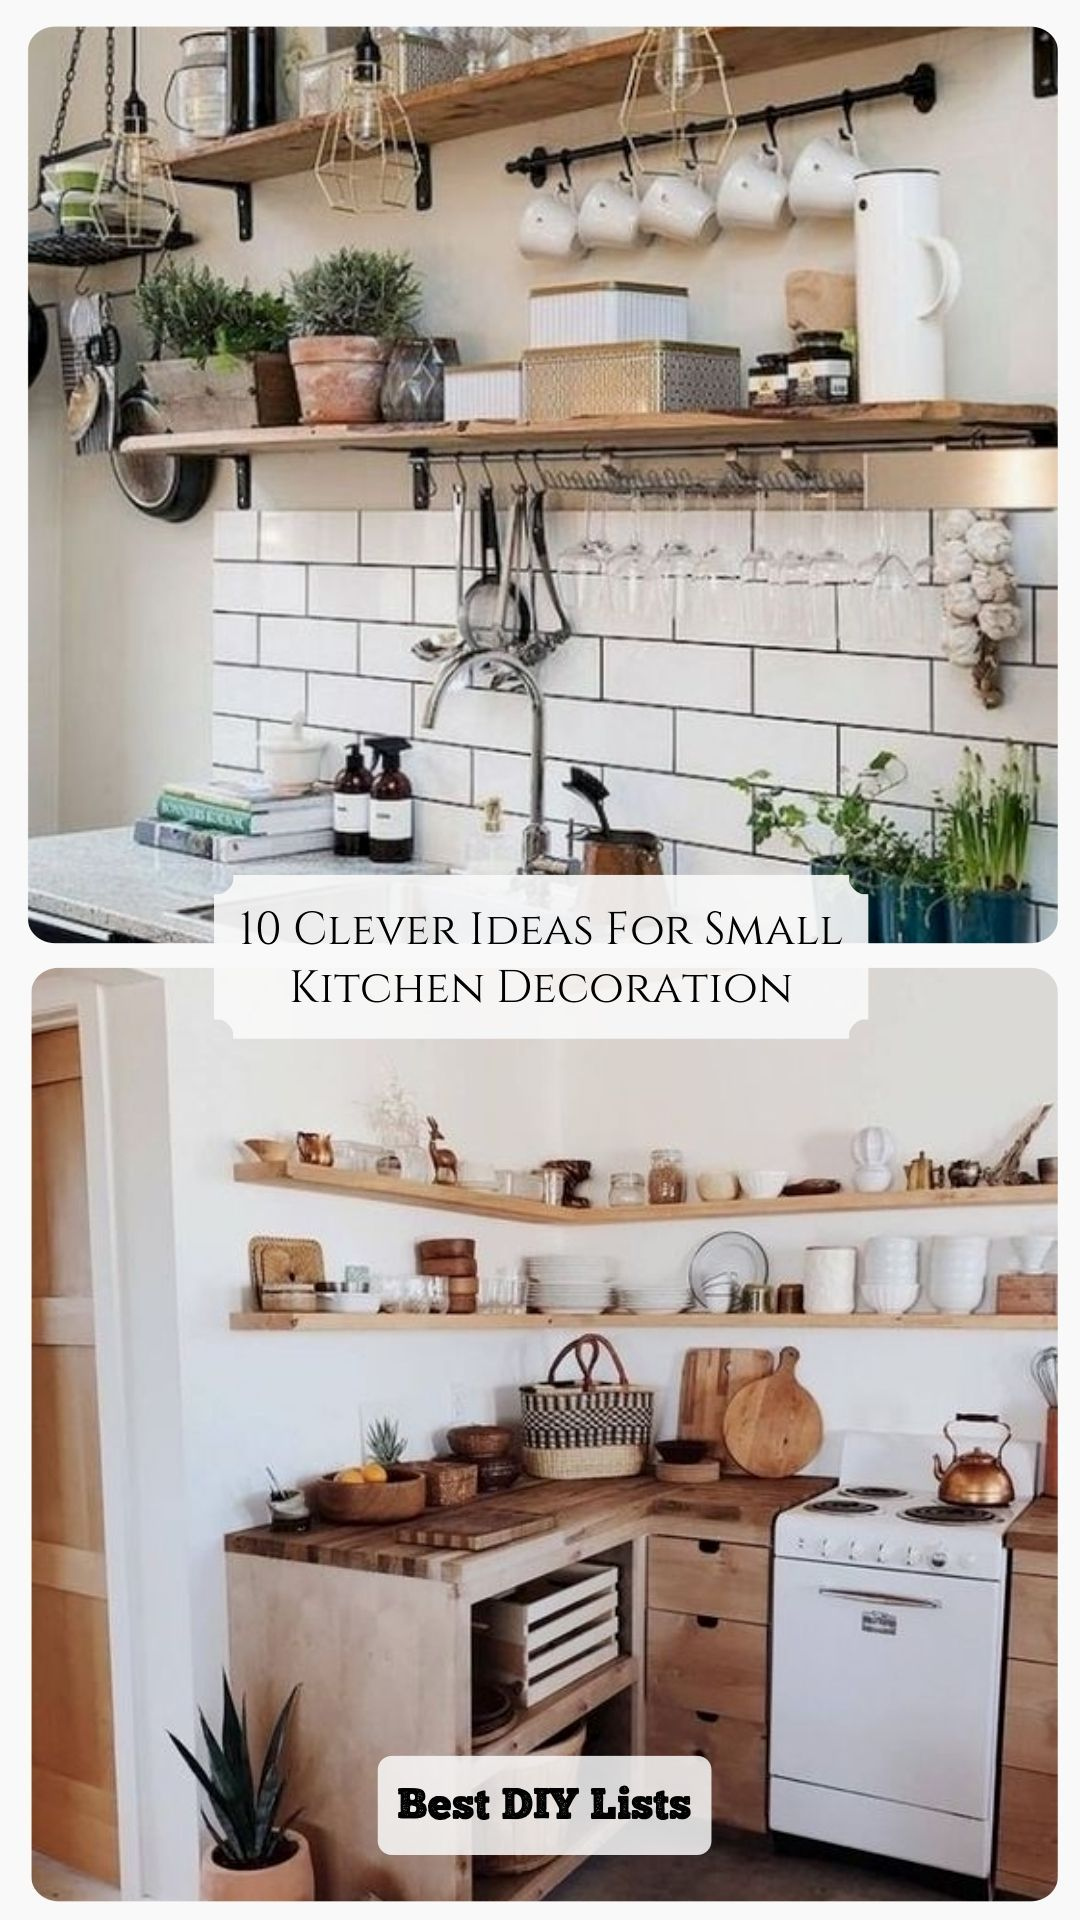 Target Home Decor 10 Clever Ideas For Small Kitchen Decoration Smallkitchen In 2020 Home Decor Kitchen Warm Home Decor Kitchen Remodel Small